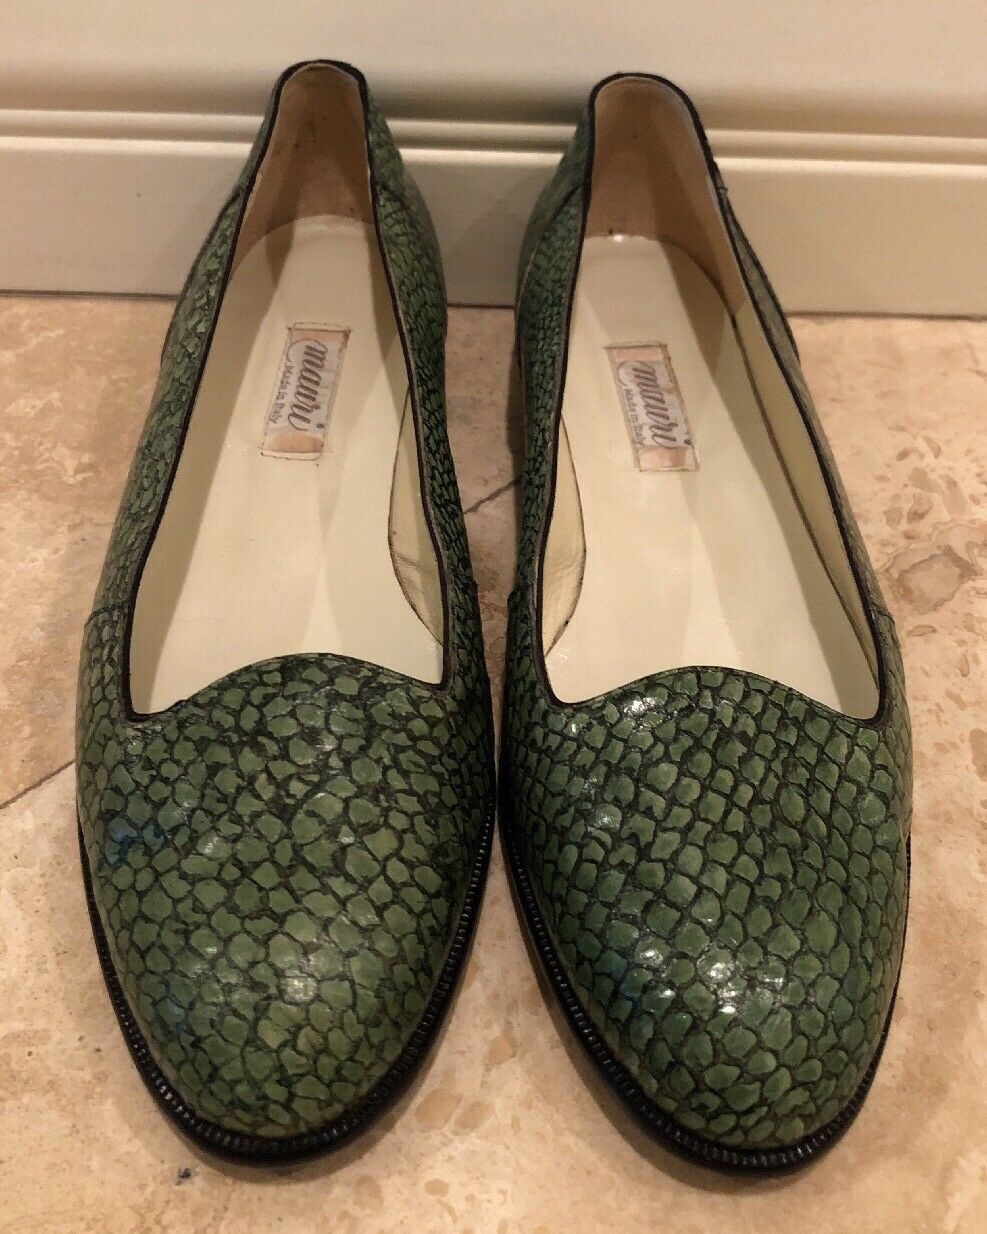 MAURI Italy Italy MAURI Genuine Exotic Crocodile Skin Loafer Green Black Leather Soles Sz 36 288402